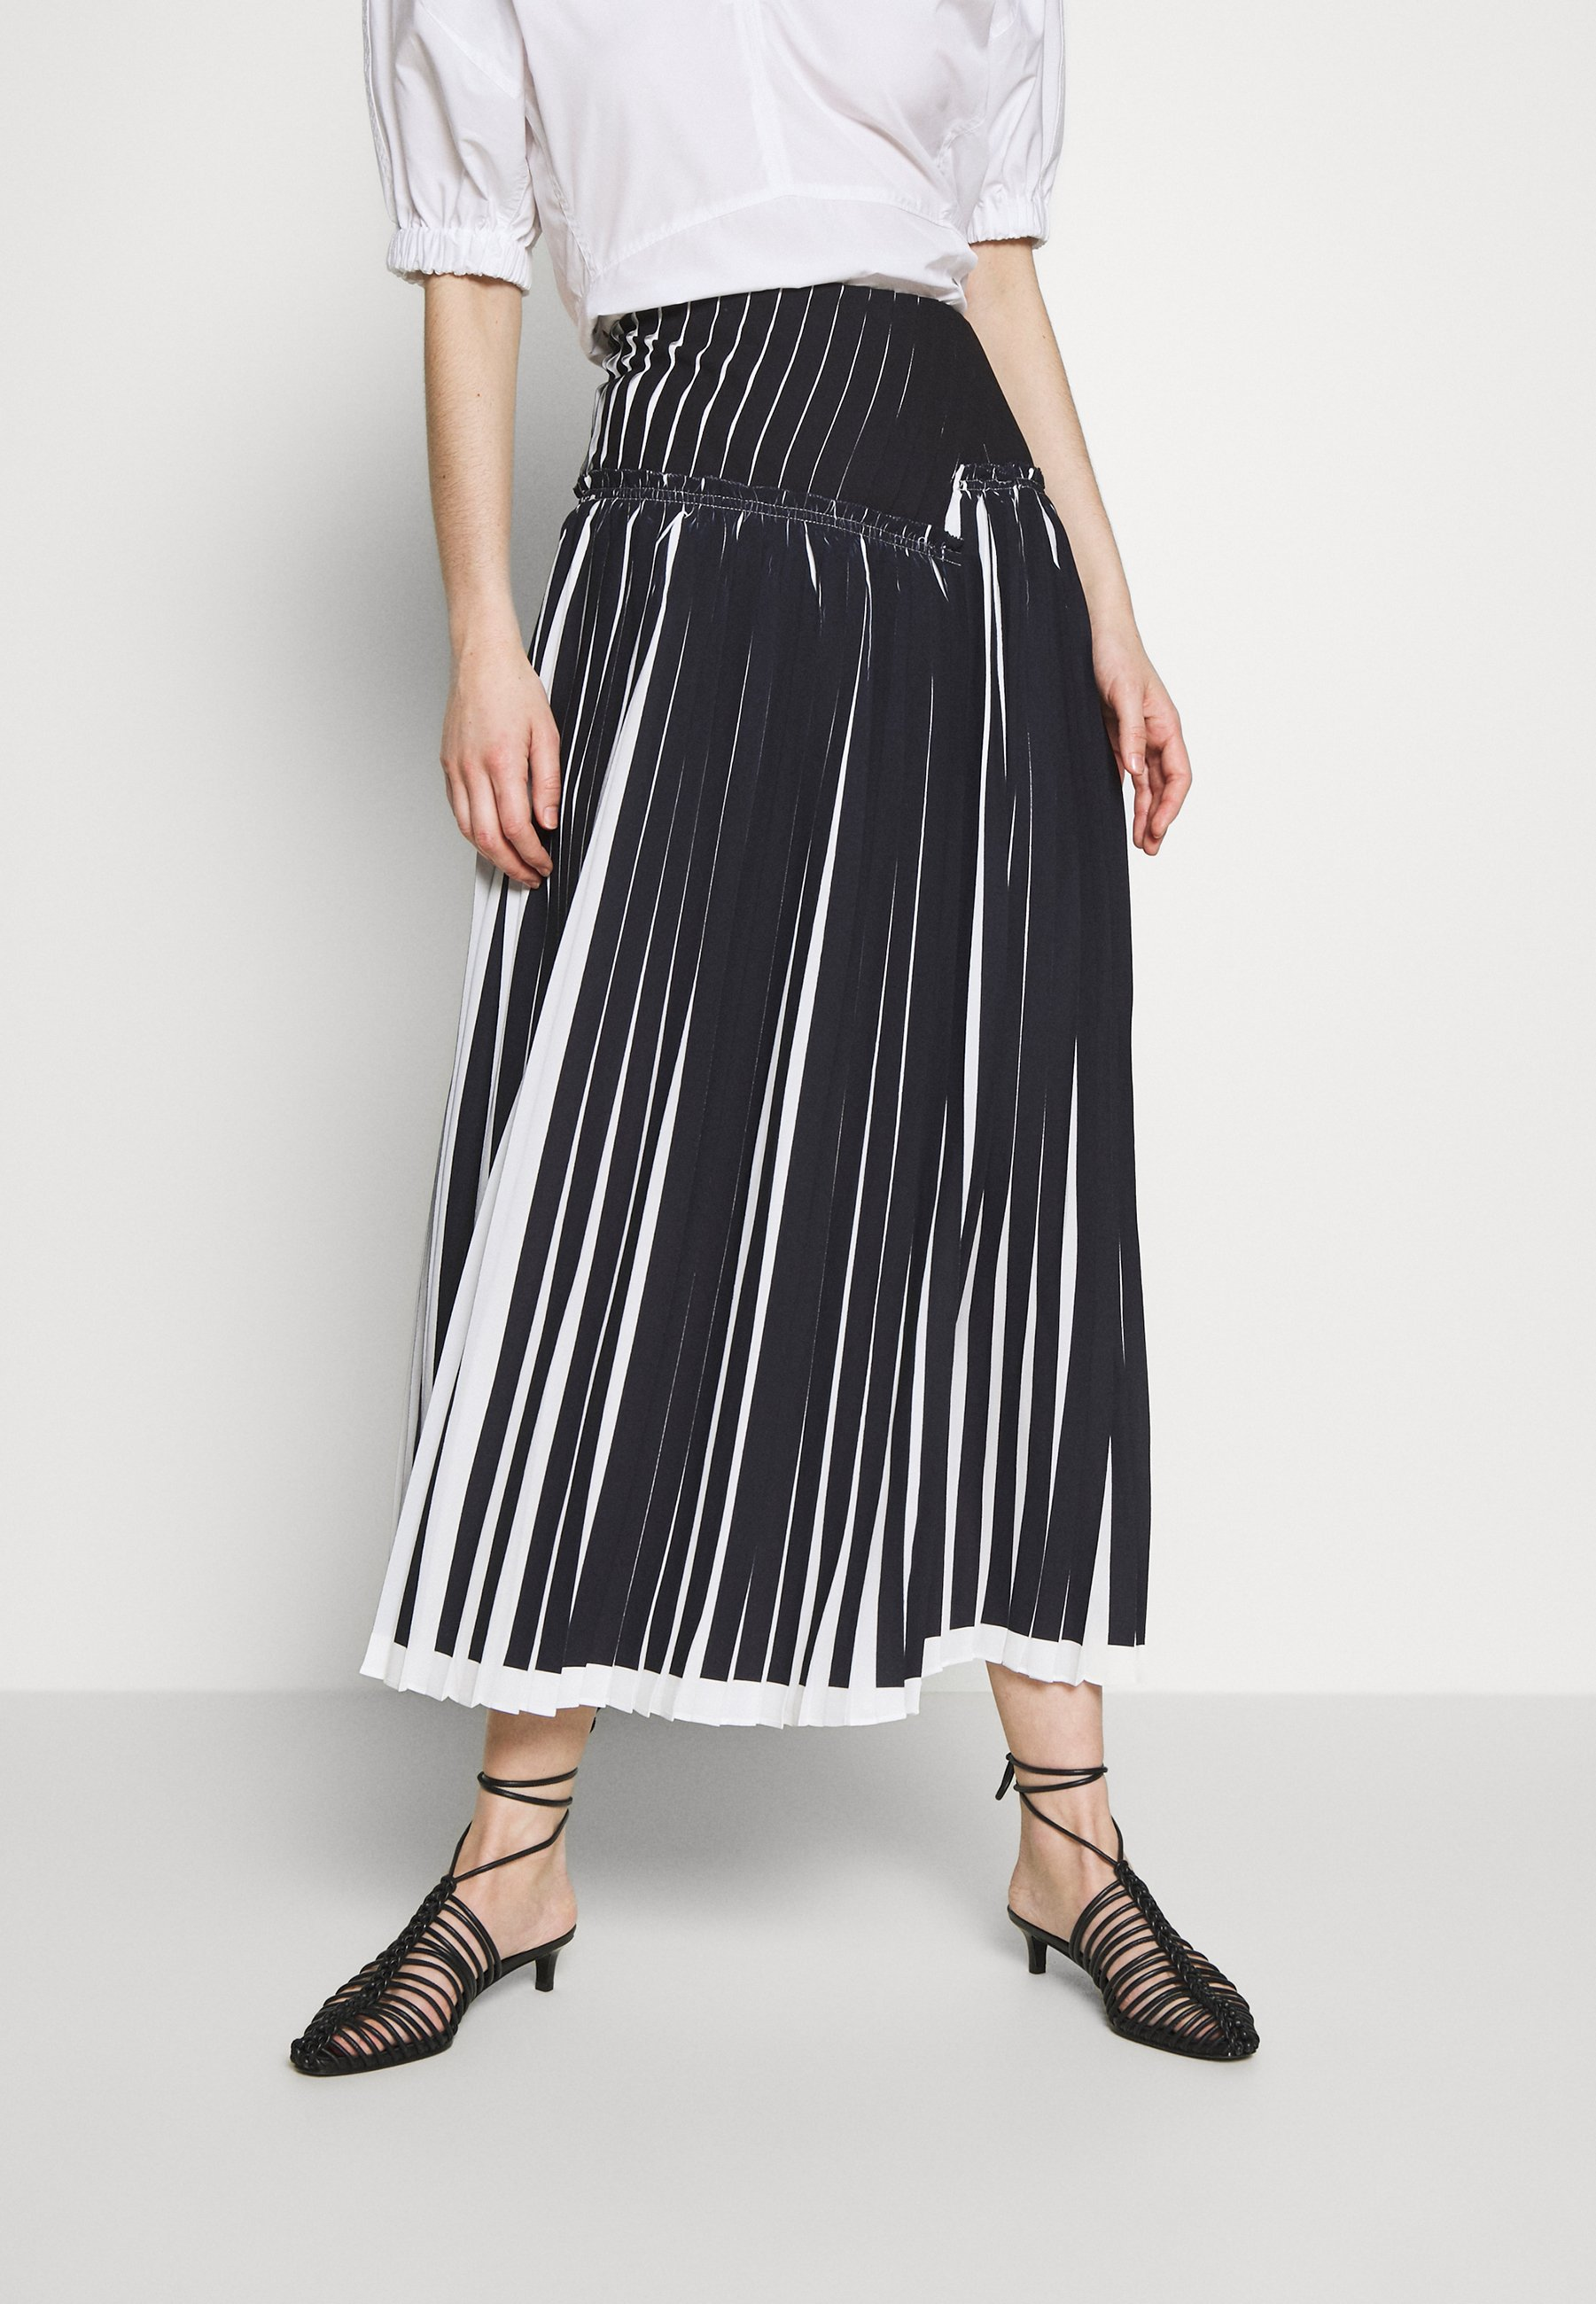 3.1 Phillip Lim KNIFE PLEATED SKIRT A lijn rok black